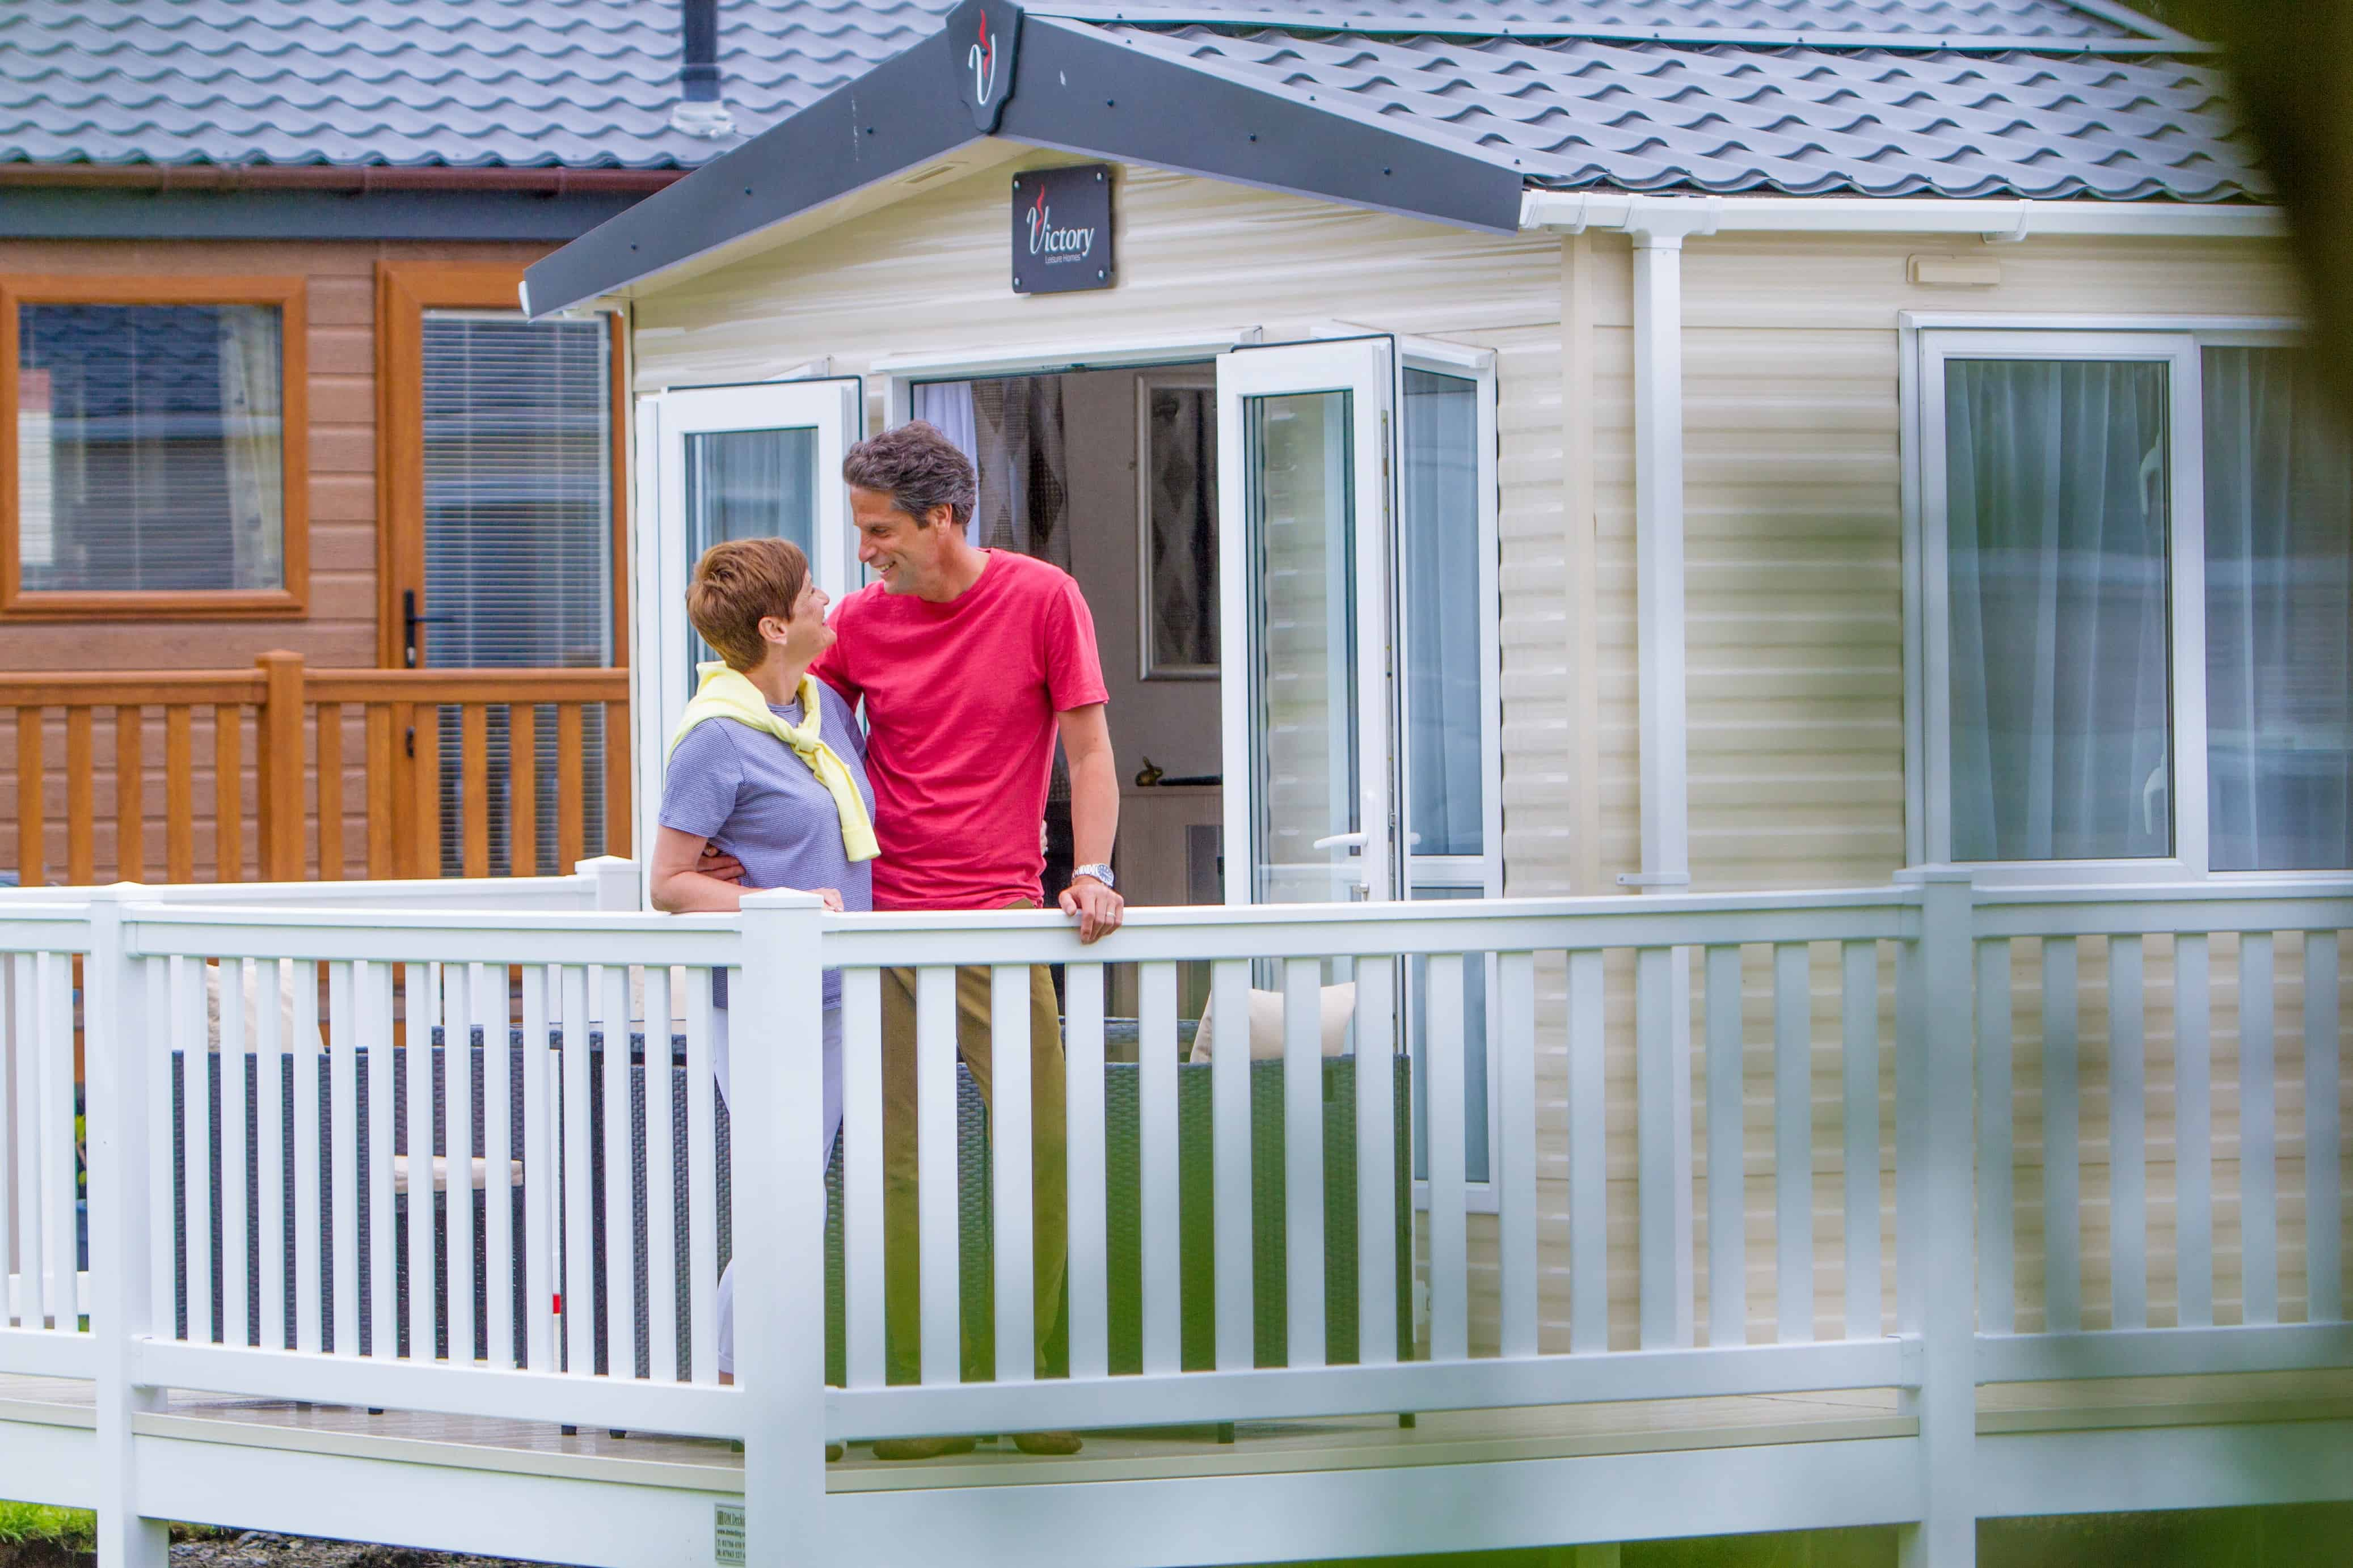 Own a holiday home at Coldingham Bay in Berwickshire